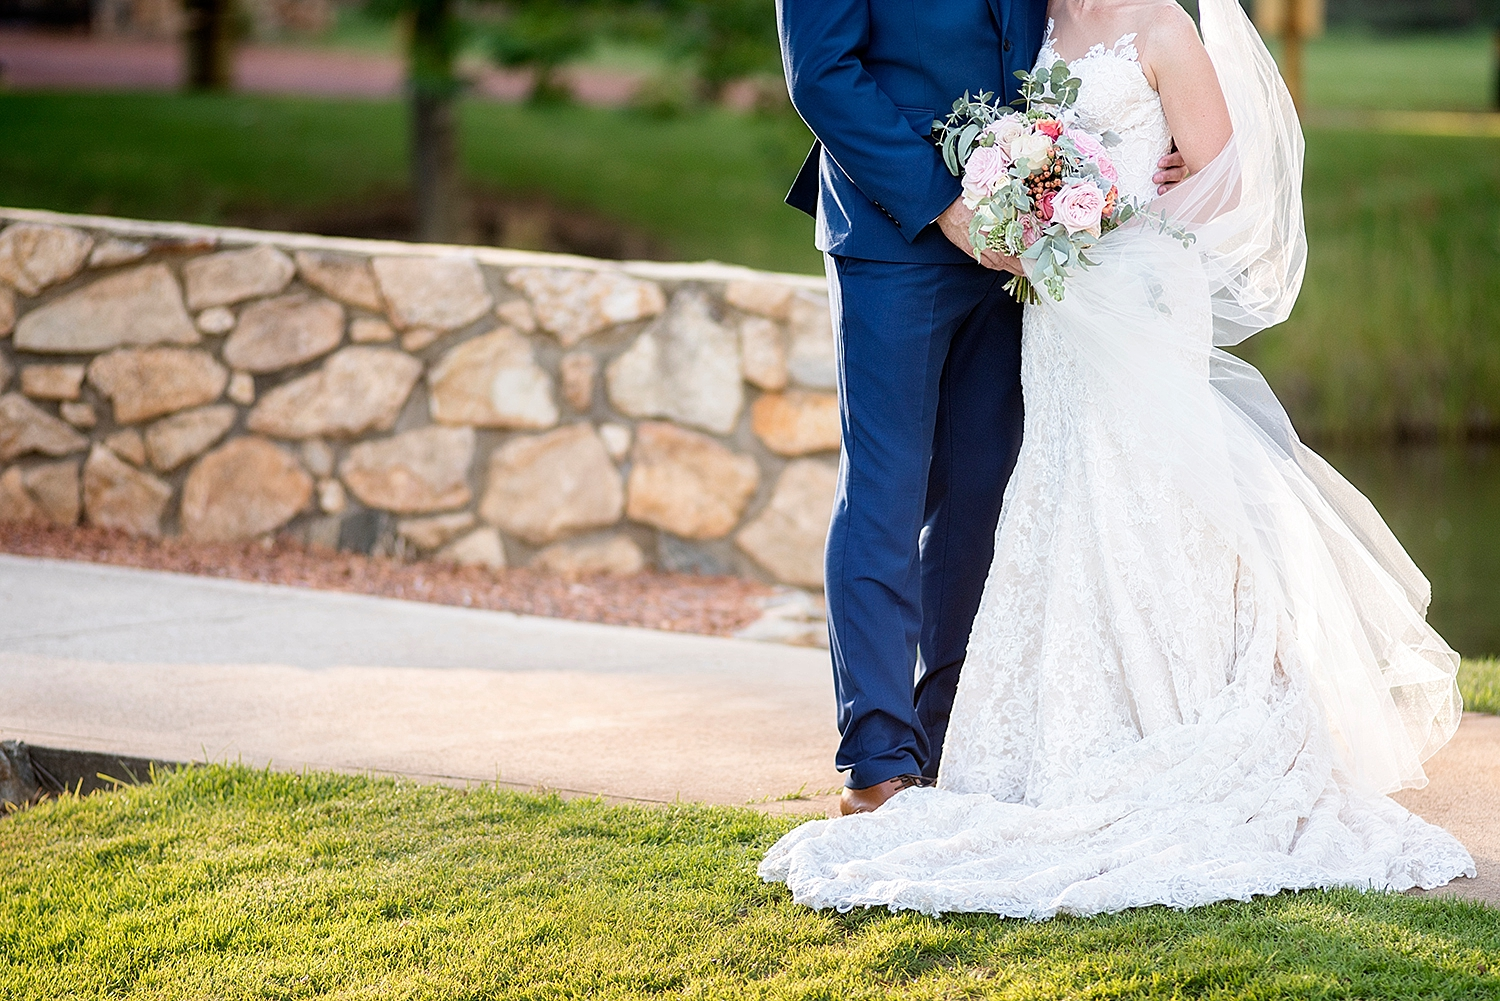 50_lace dress with native bouquet wedding perth .jpg